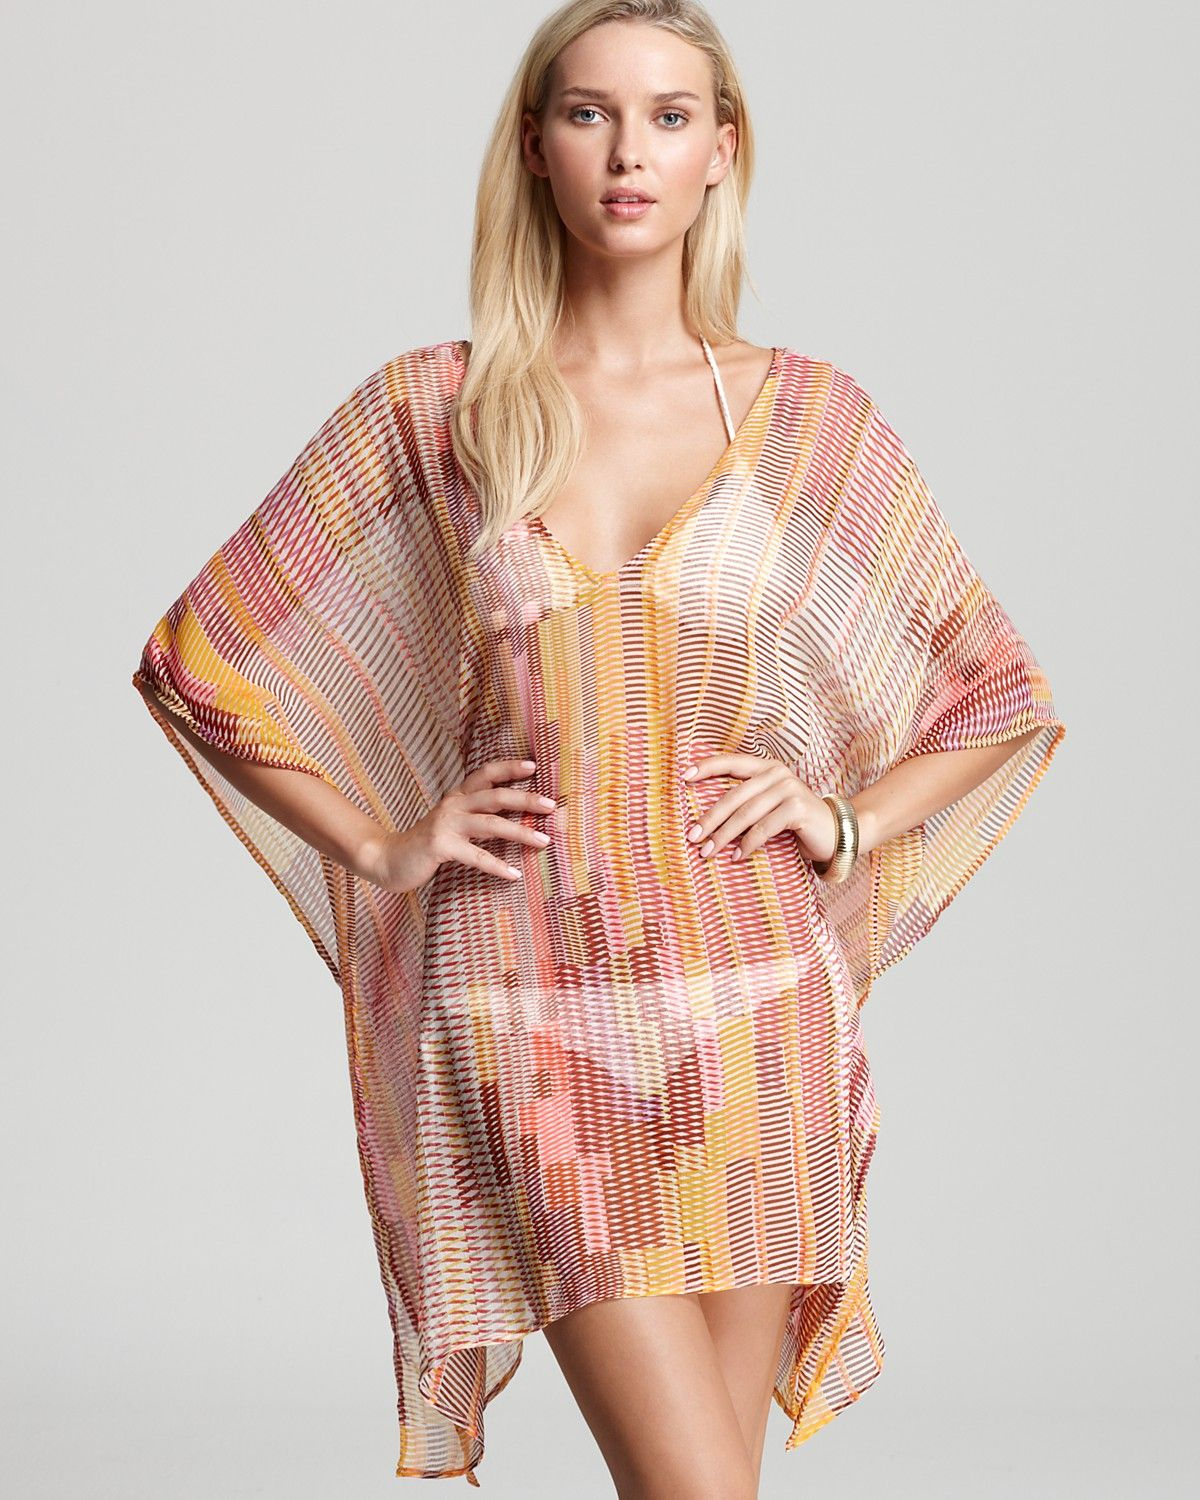 Echo Logo Stripe Short Caftan Swimsuit Cover Up